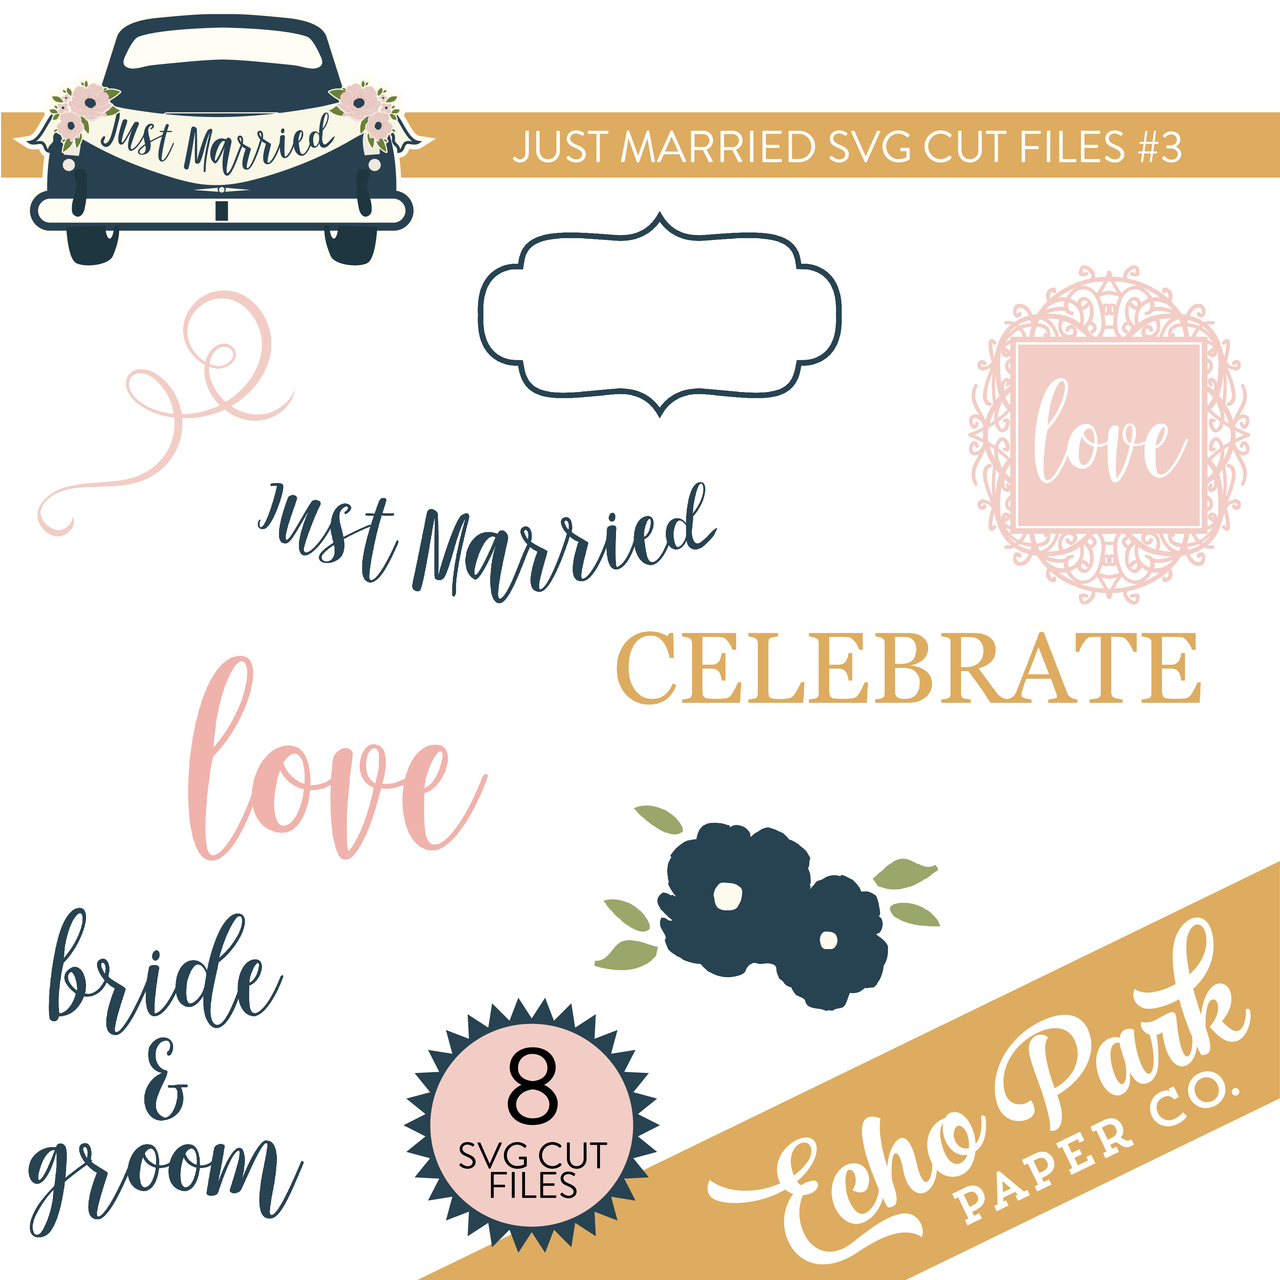 Just Married SVG Cut Files #3